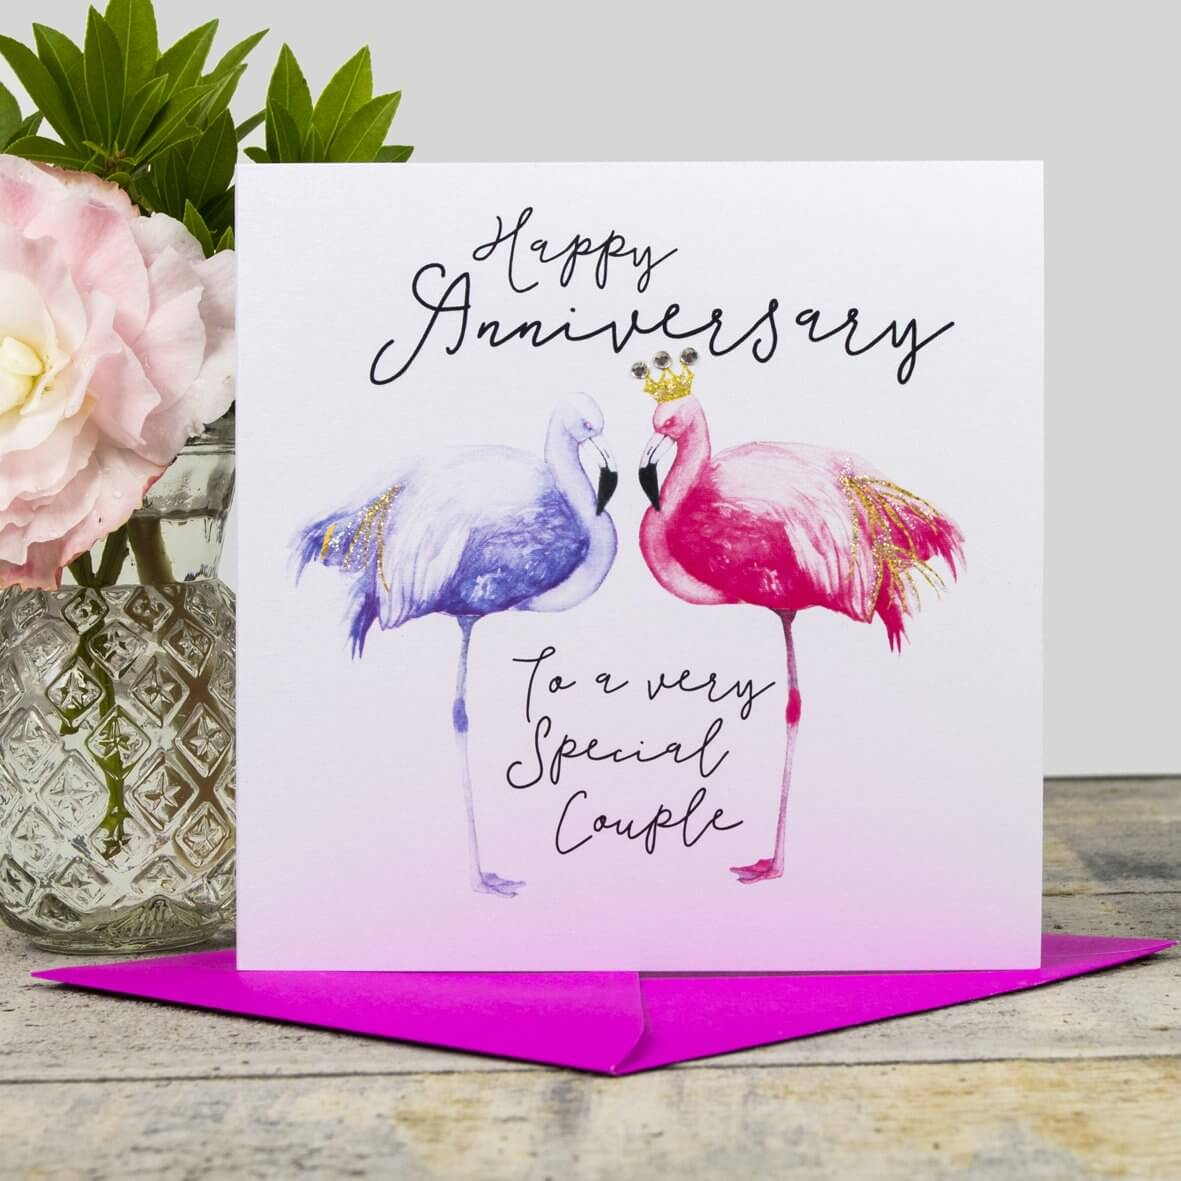 Happy Anniversary Card - To a very Special Couple